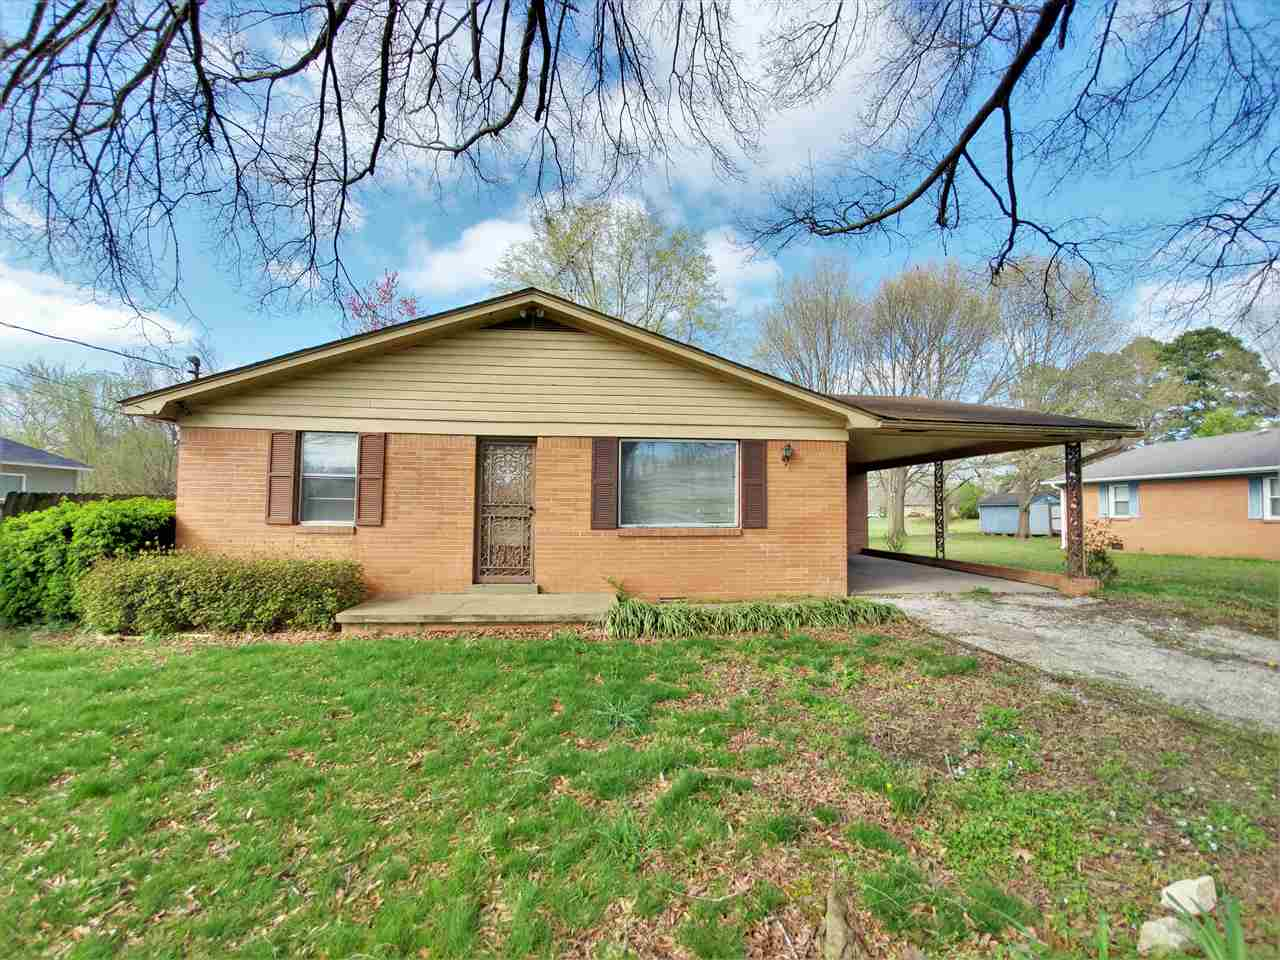 1916 Lynn St, Dyersburg, Tennessee 38024, 3 Bedrooms Bedrooms, ,1 BathroomBathrooms,Residential,For Sale,1916 Lynn St,201276